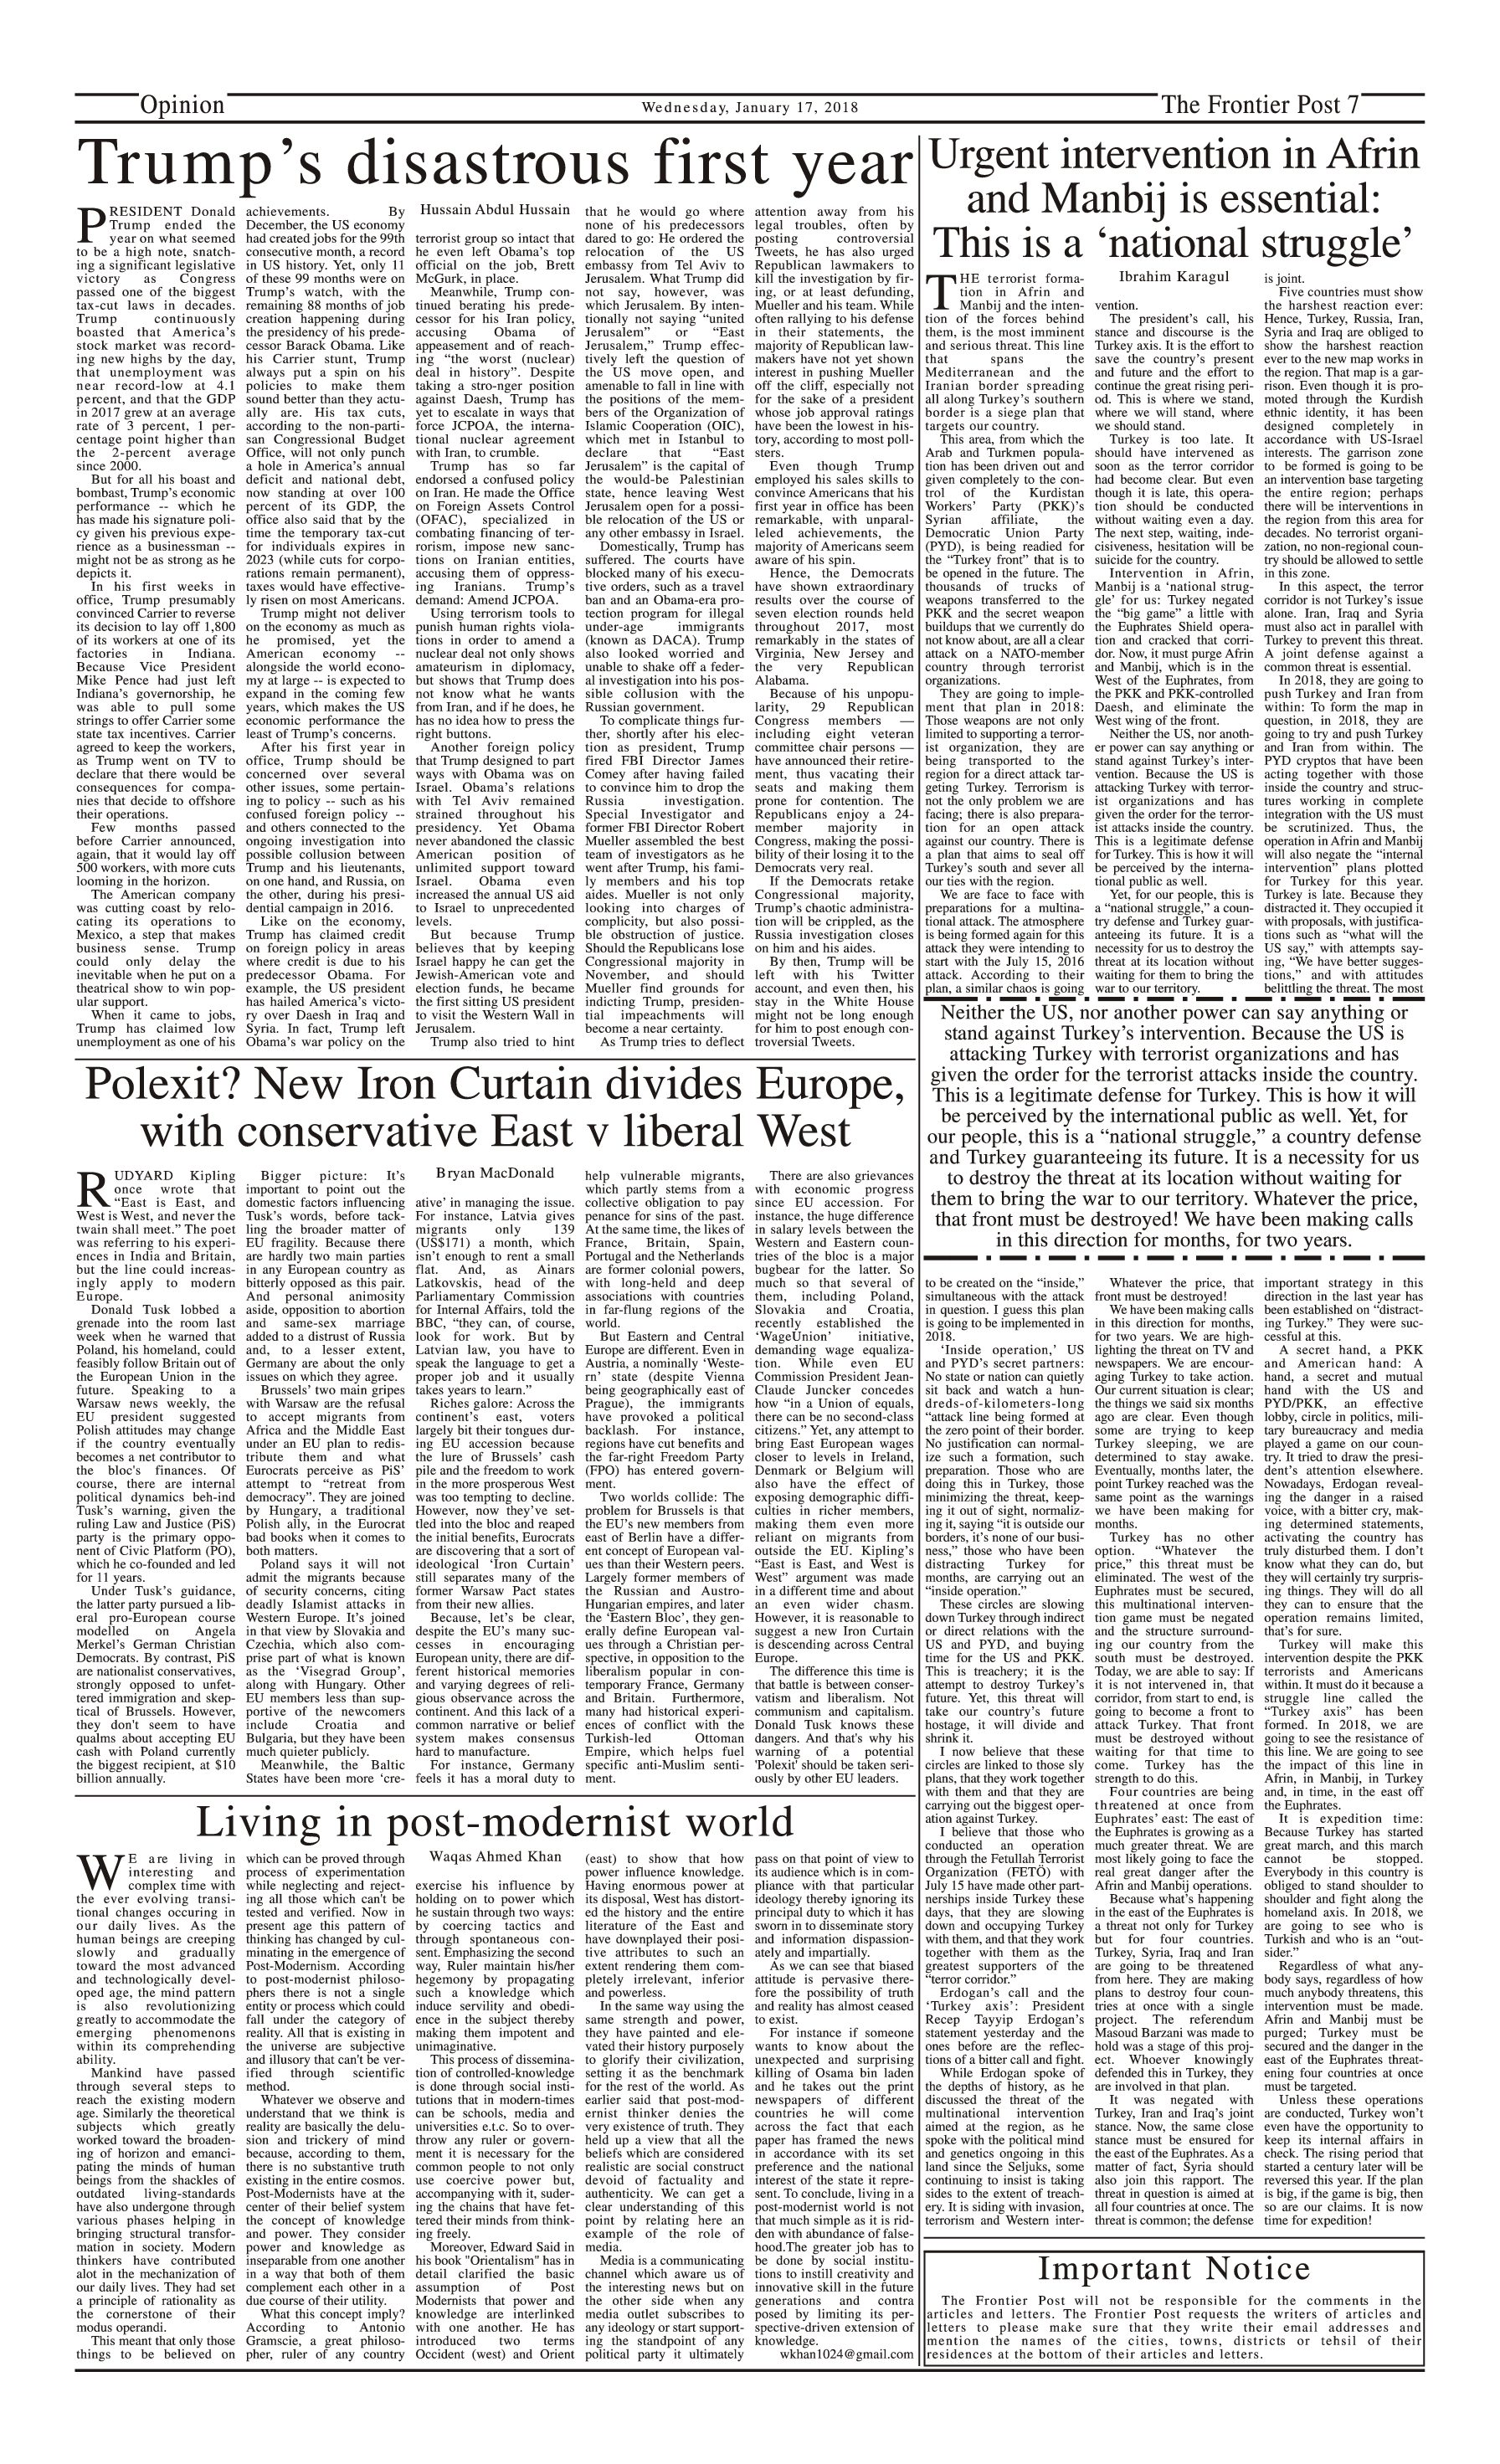 Opinion Page 17-1